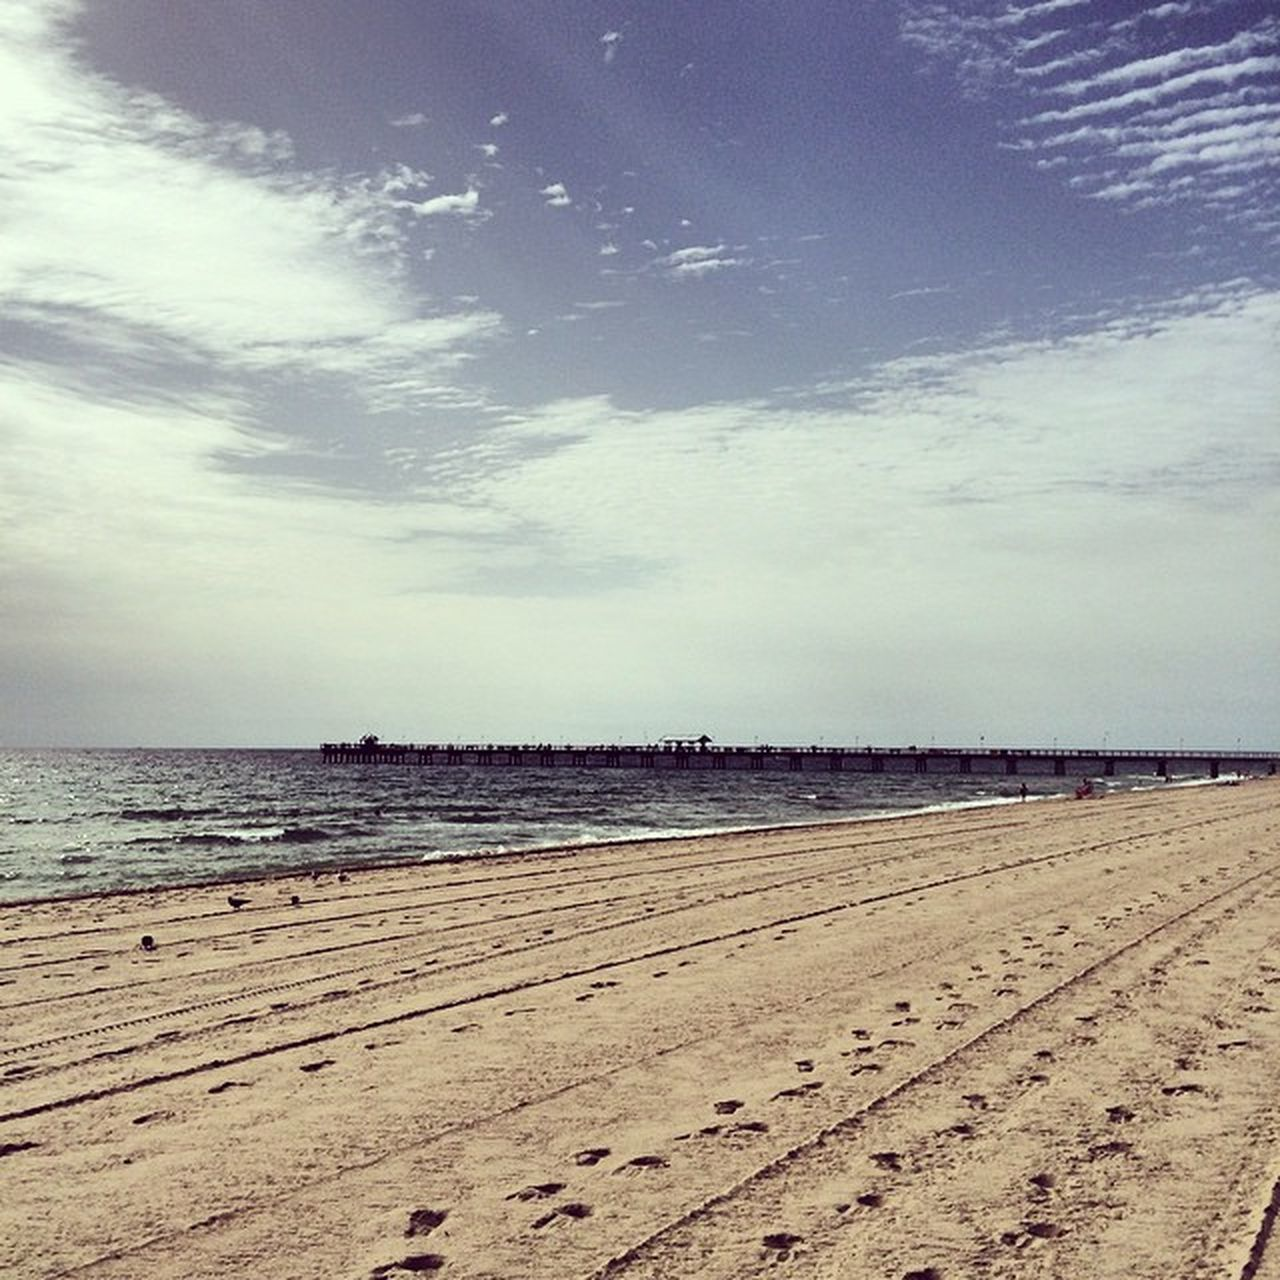 sea, beach, sand, horizon over water, water, scenics, nature, sky, tranquility, tranquil scene, beauty in nature, cloud - sky, outdoors, day, no people